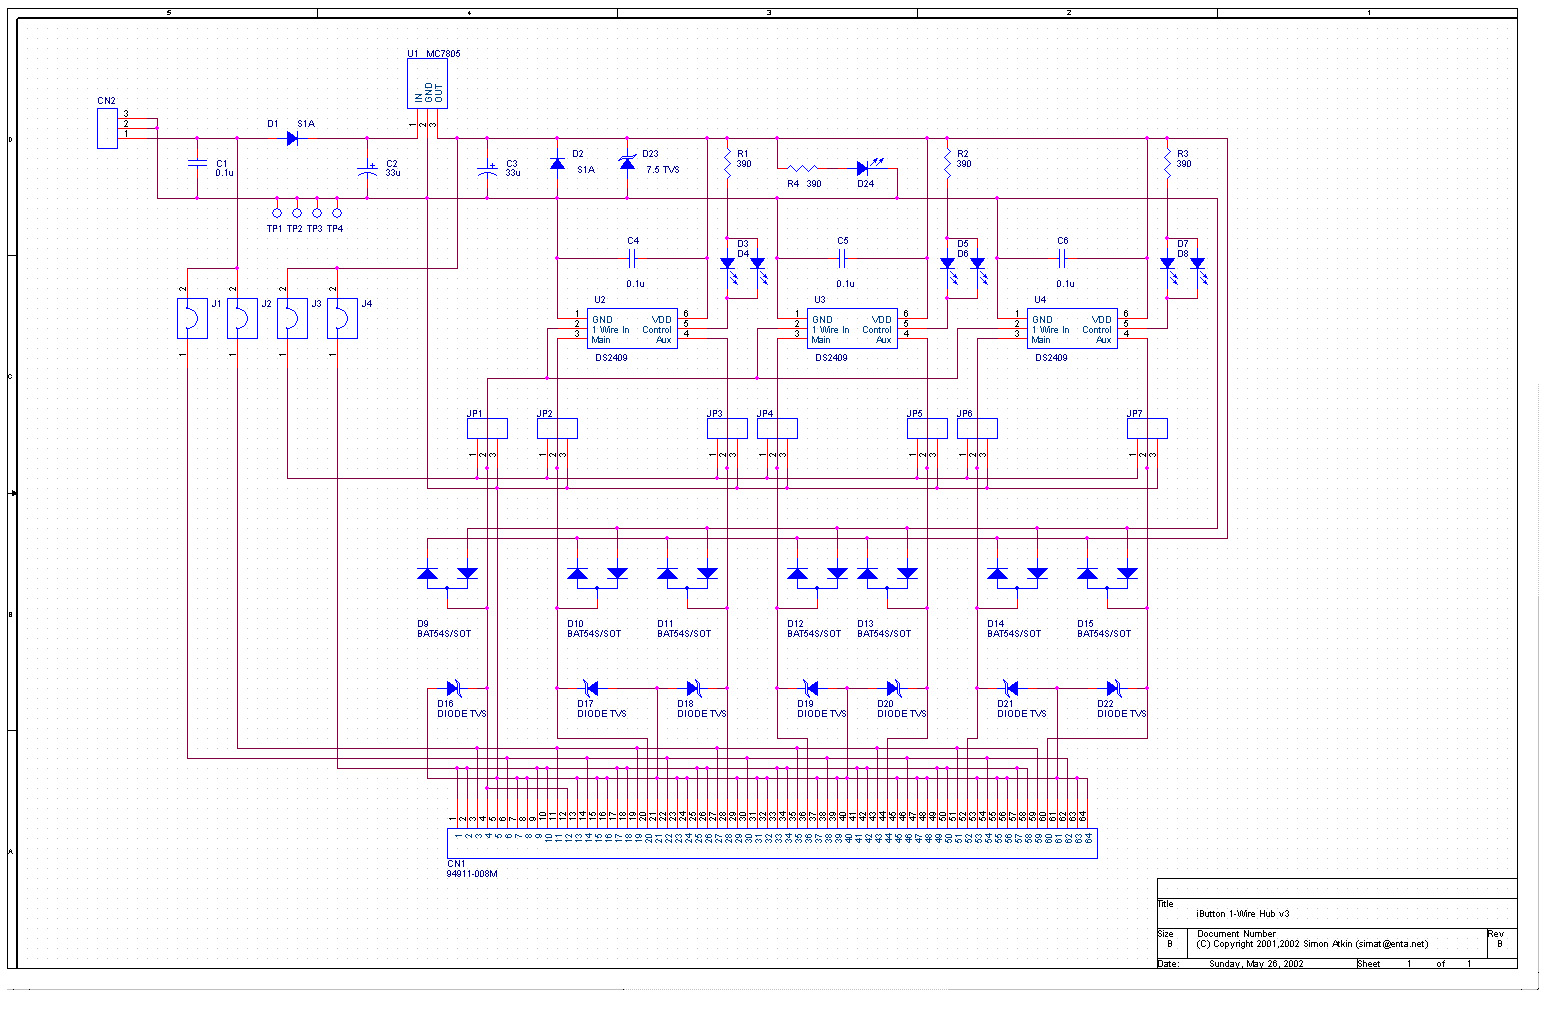 One Wire Schematic Just Another Wiring Diagram Blog 1 Hub Version 3 Simat Electronic Projects Rh Org Uk Electrical Schematics